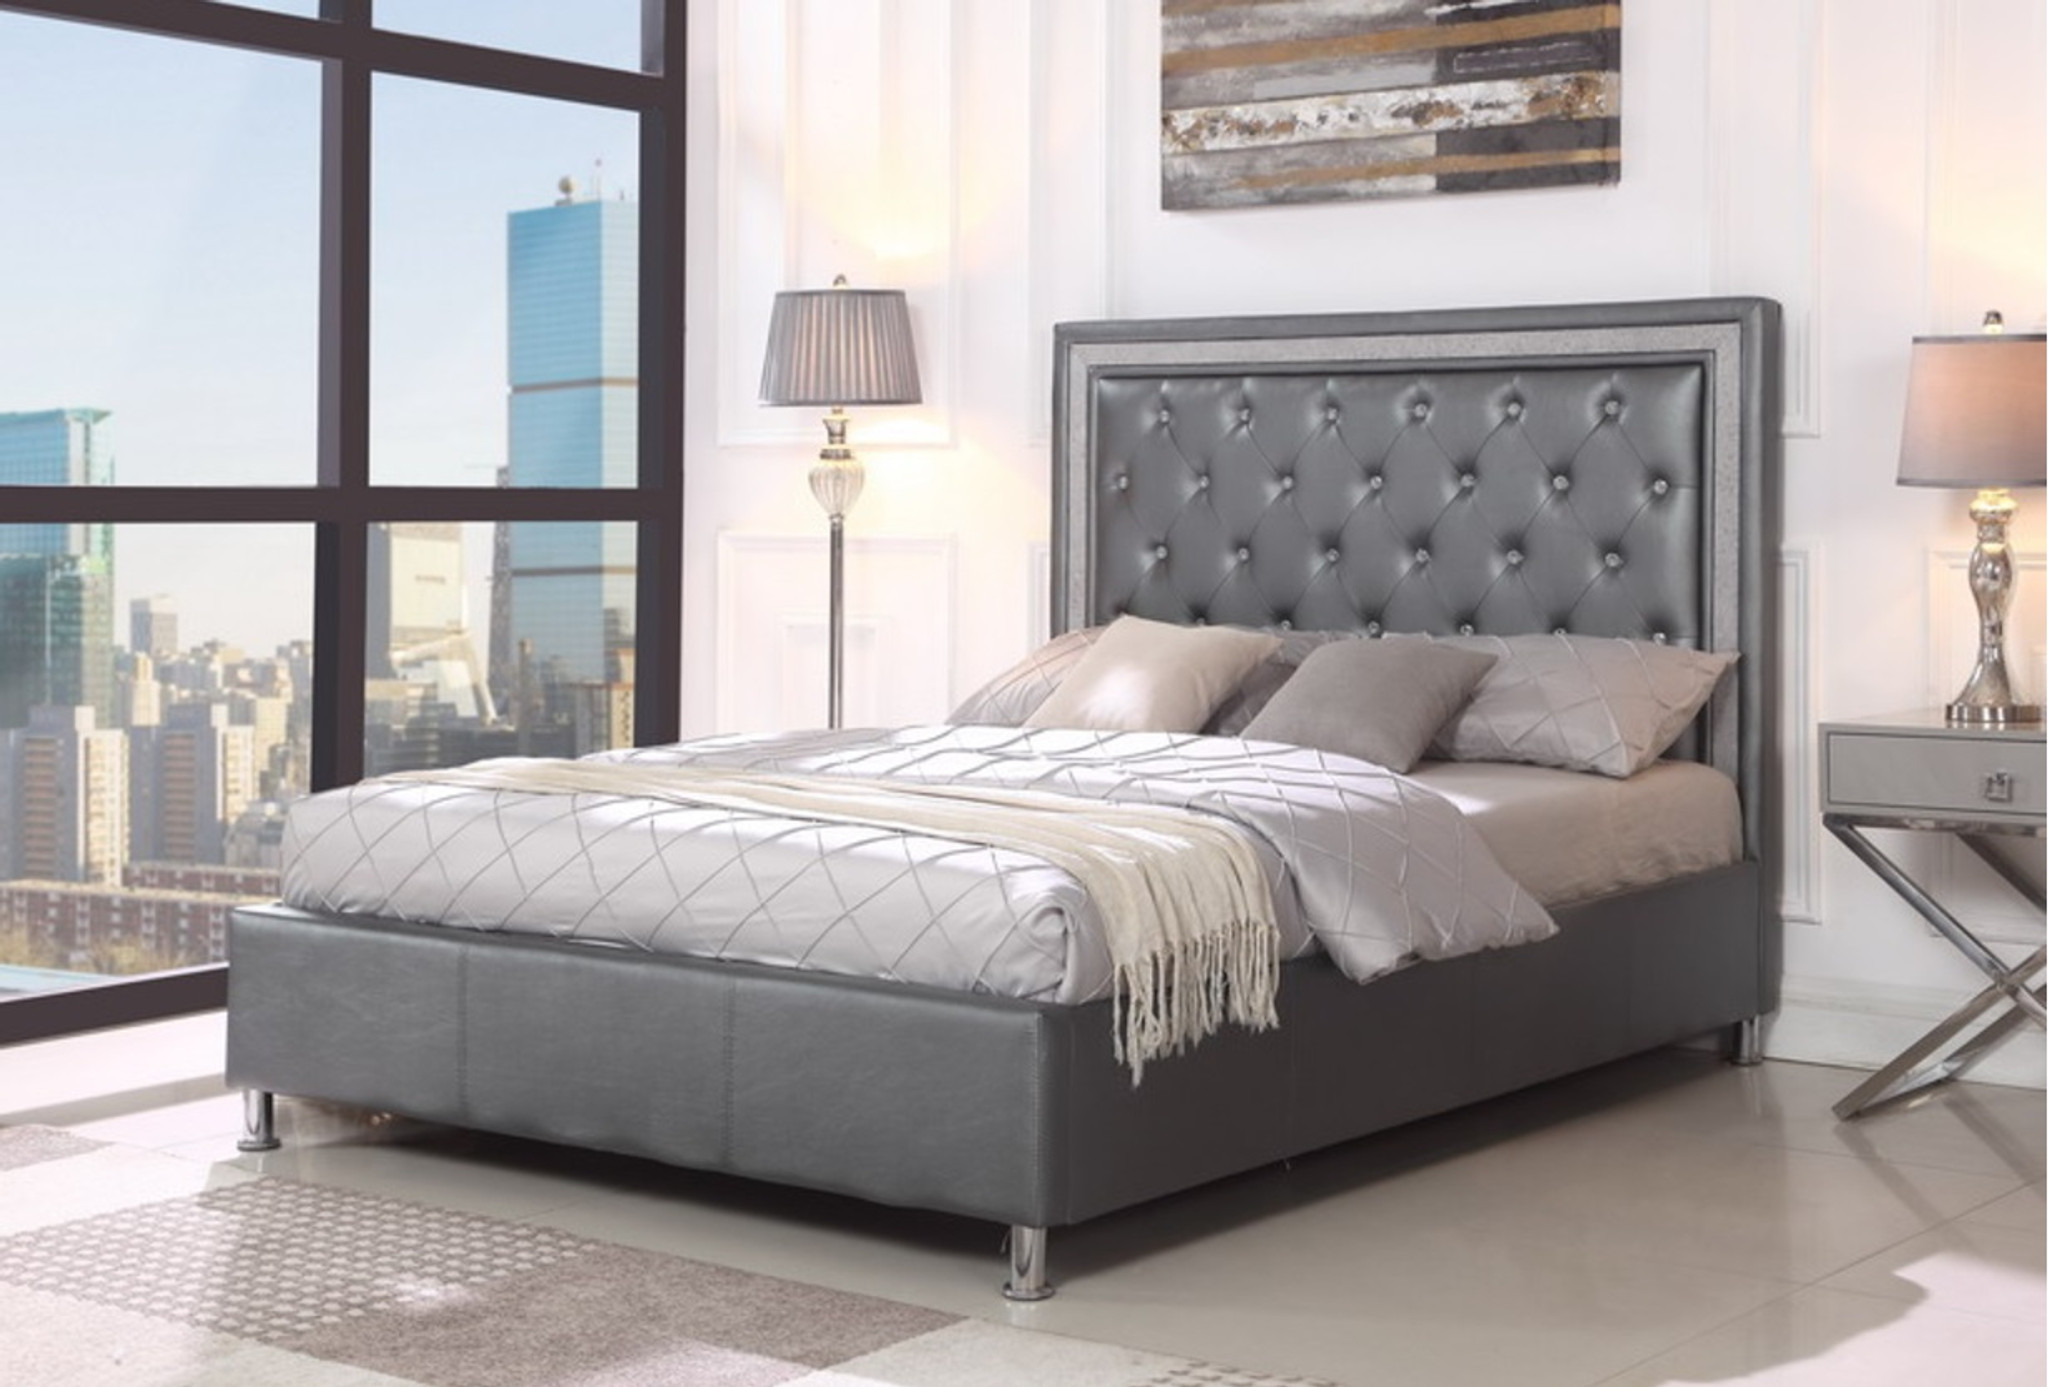 Terrific Miccaela Grey Leather Tufted Platform Bed No Boxspring Required Caraccident5 Cool Chair Designs And Ideas Caraccident5Info